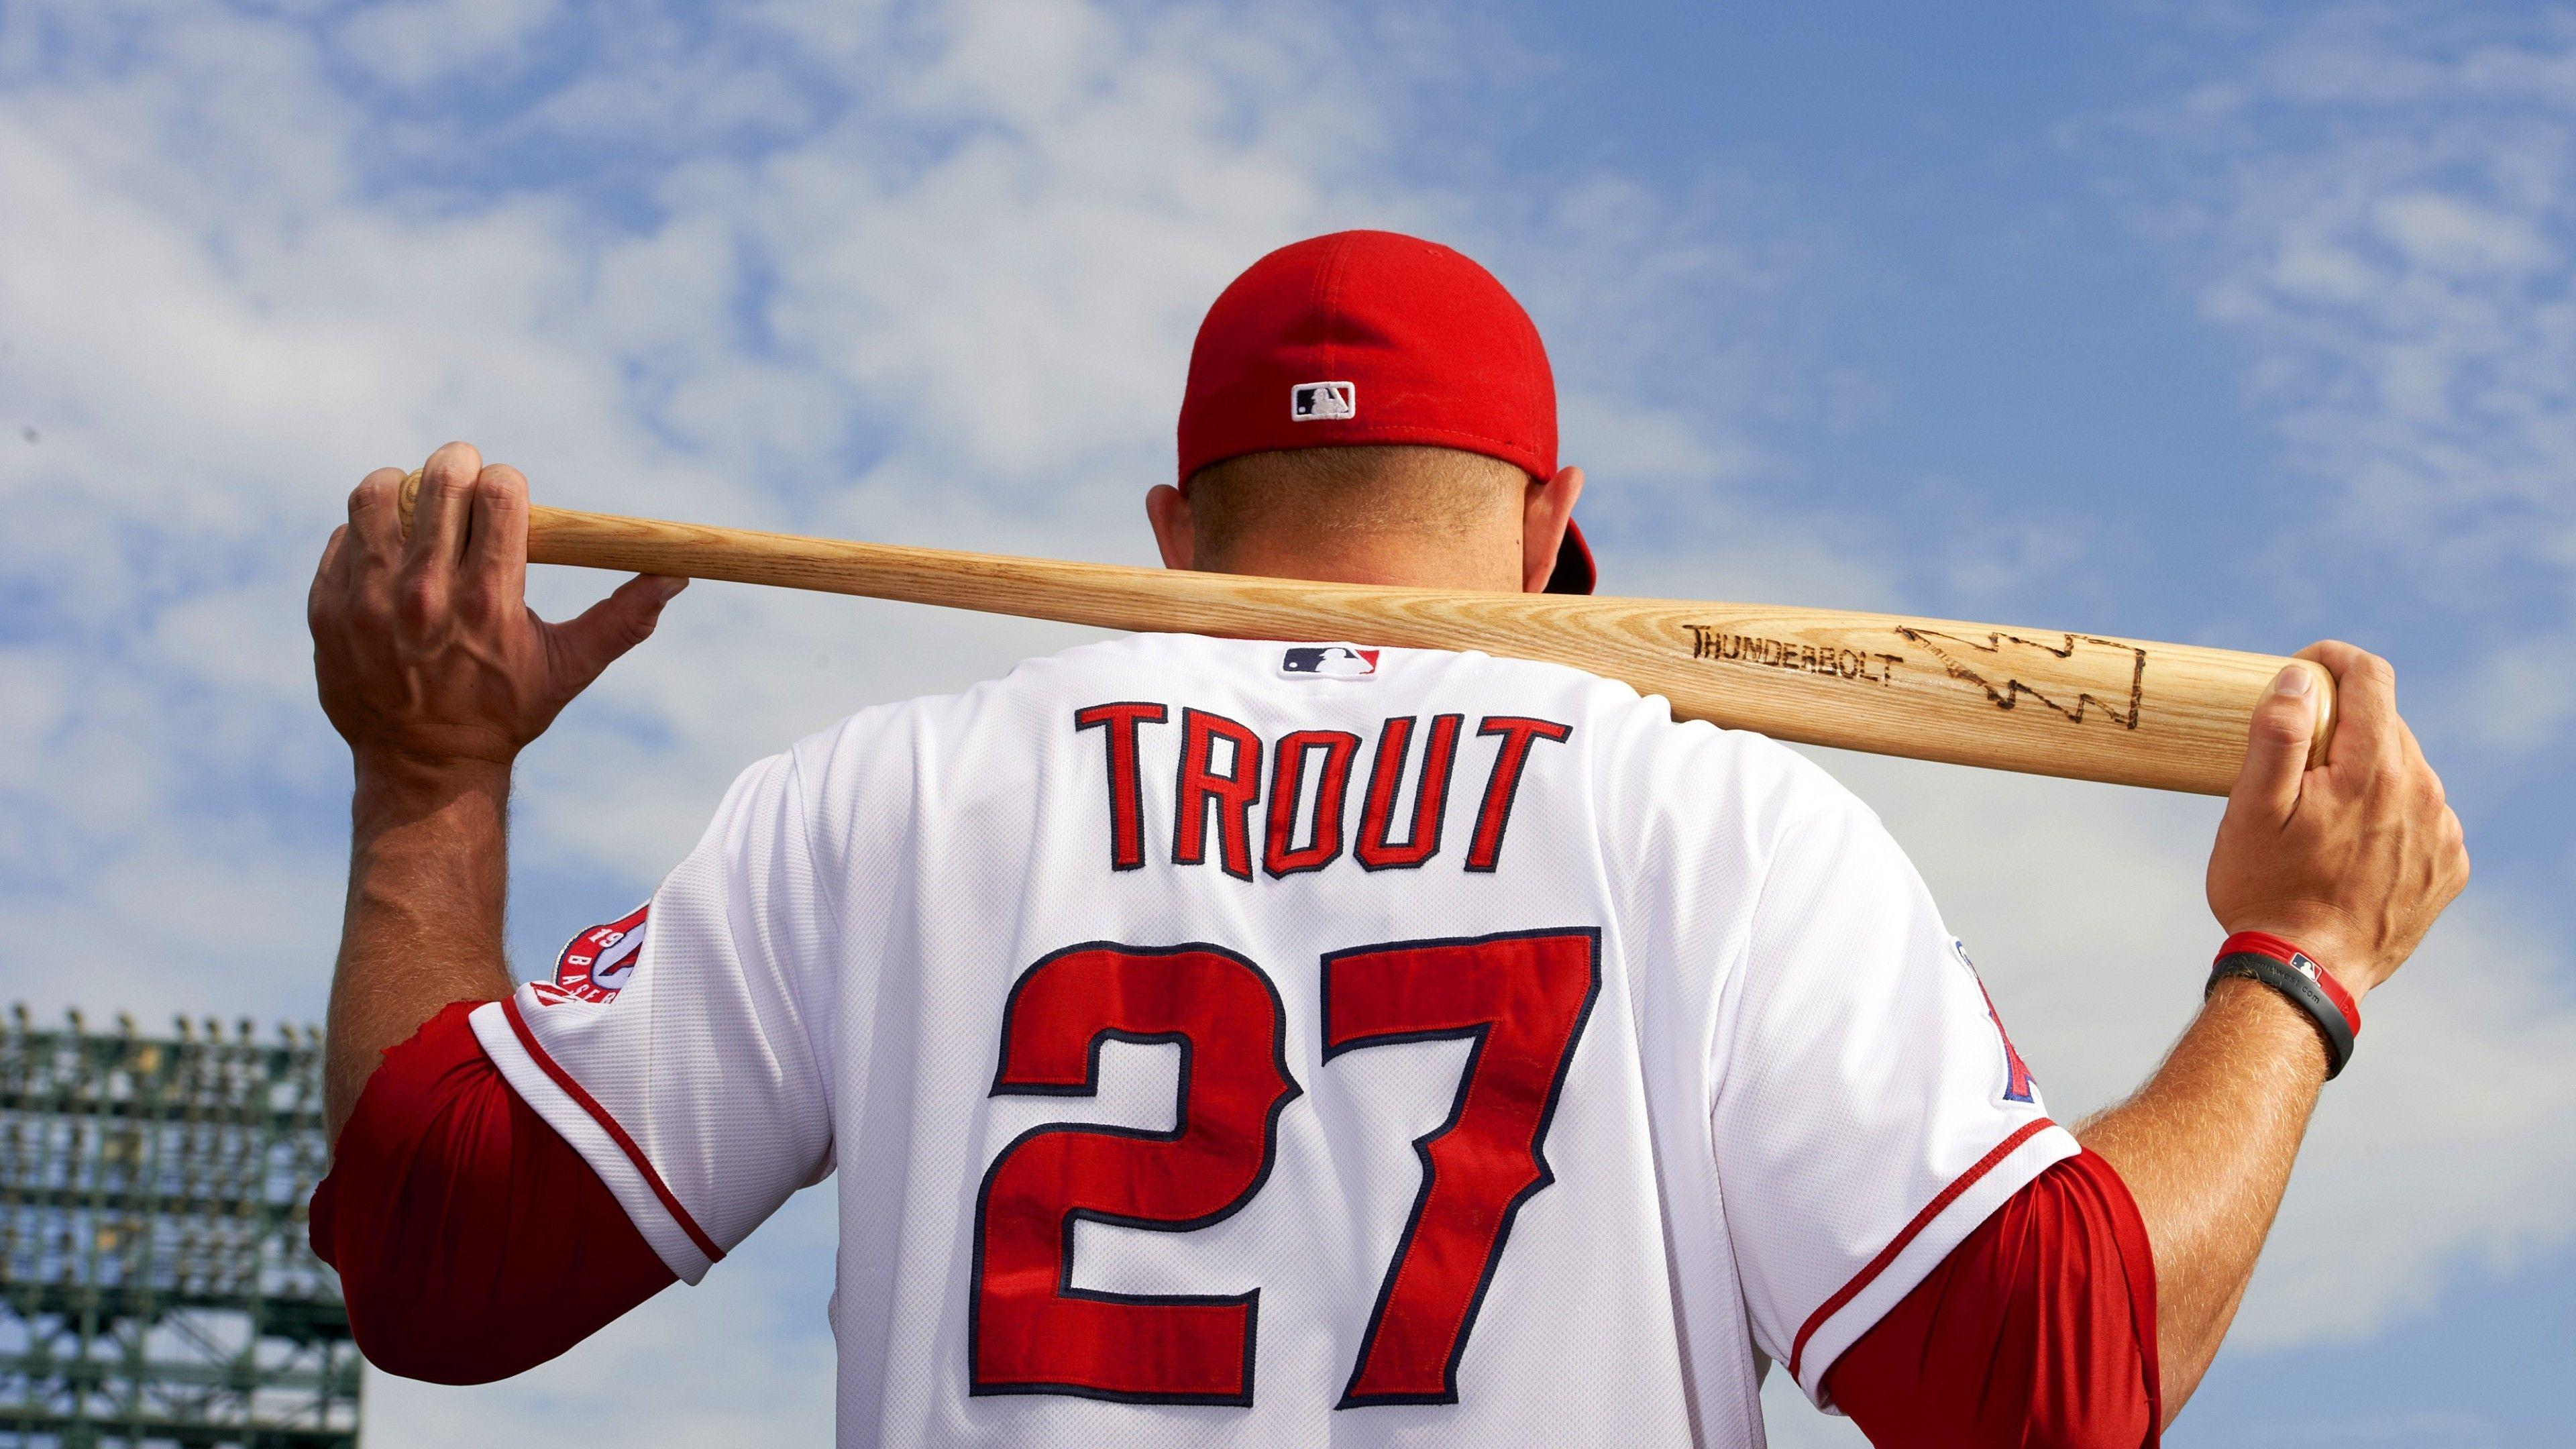 Baseball Top Baseball Players Mike Trout Los Angeles Angels